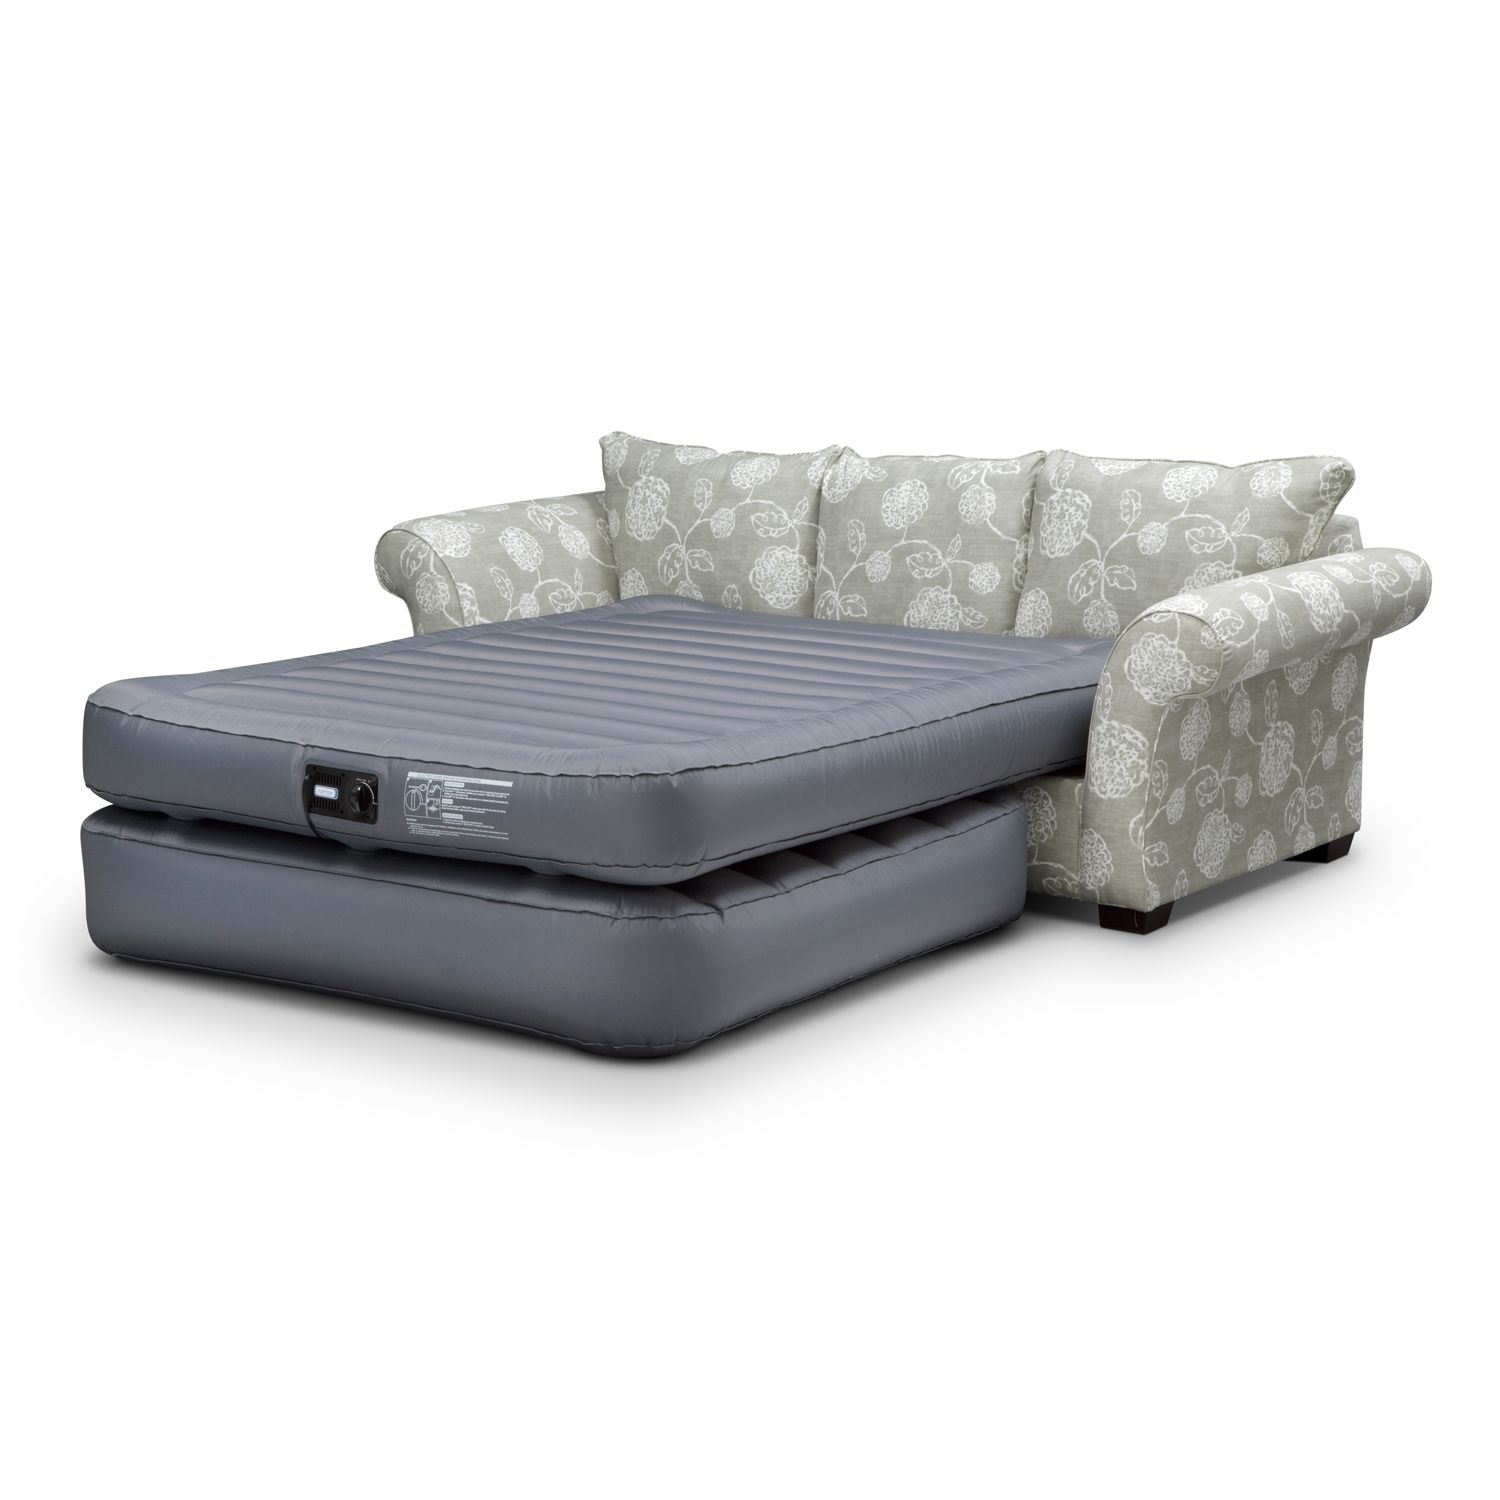 Remarkable Sofa Bed Mattress Type Ultimate Guide Sofas Air Sofa Bed Beatyapartments Chair Design Images Beatyapartmentscom